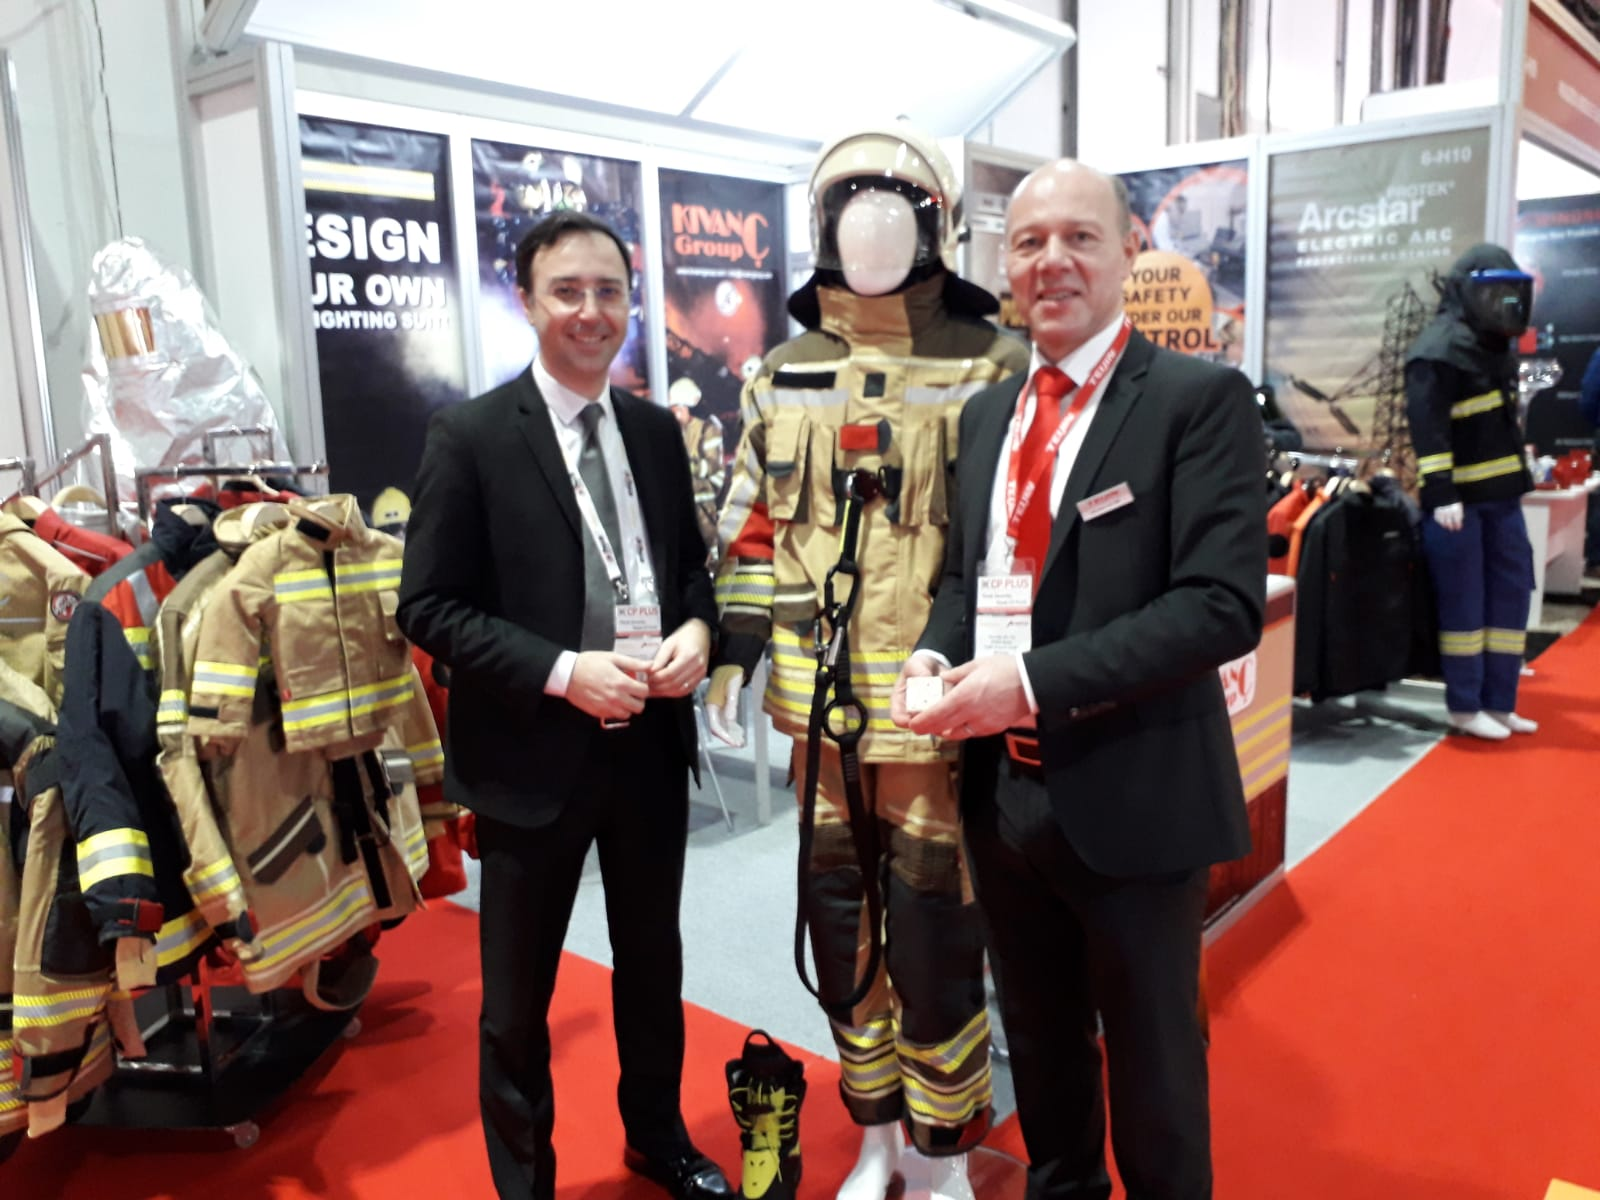 INTERSEC for Security, Safety & Fire Protection 2019